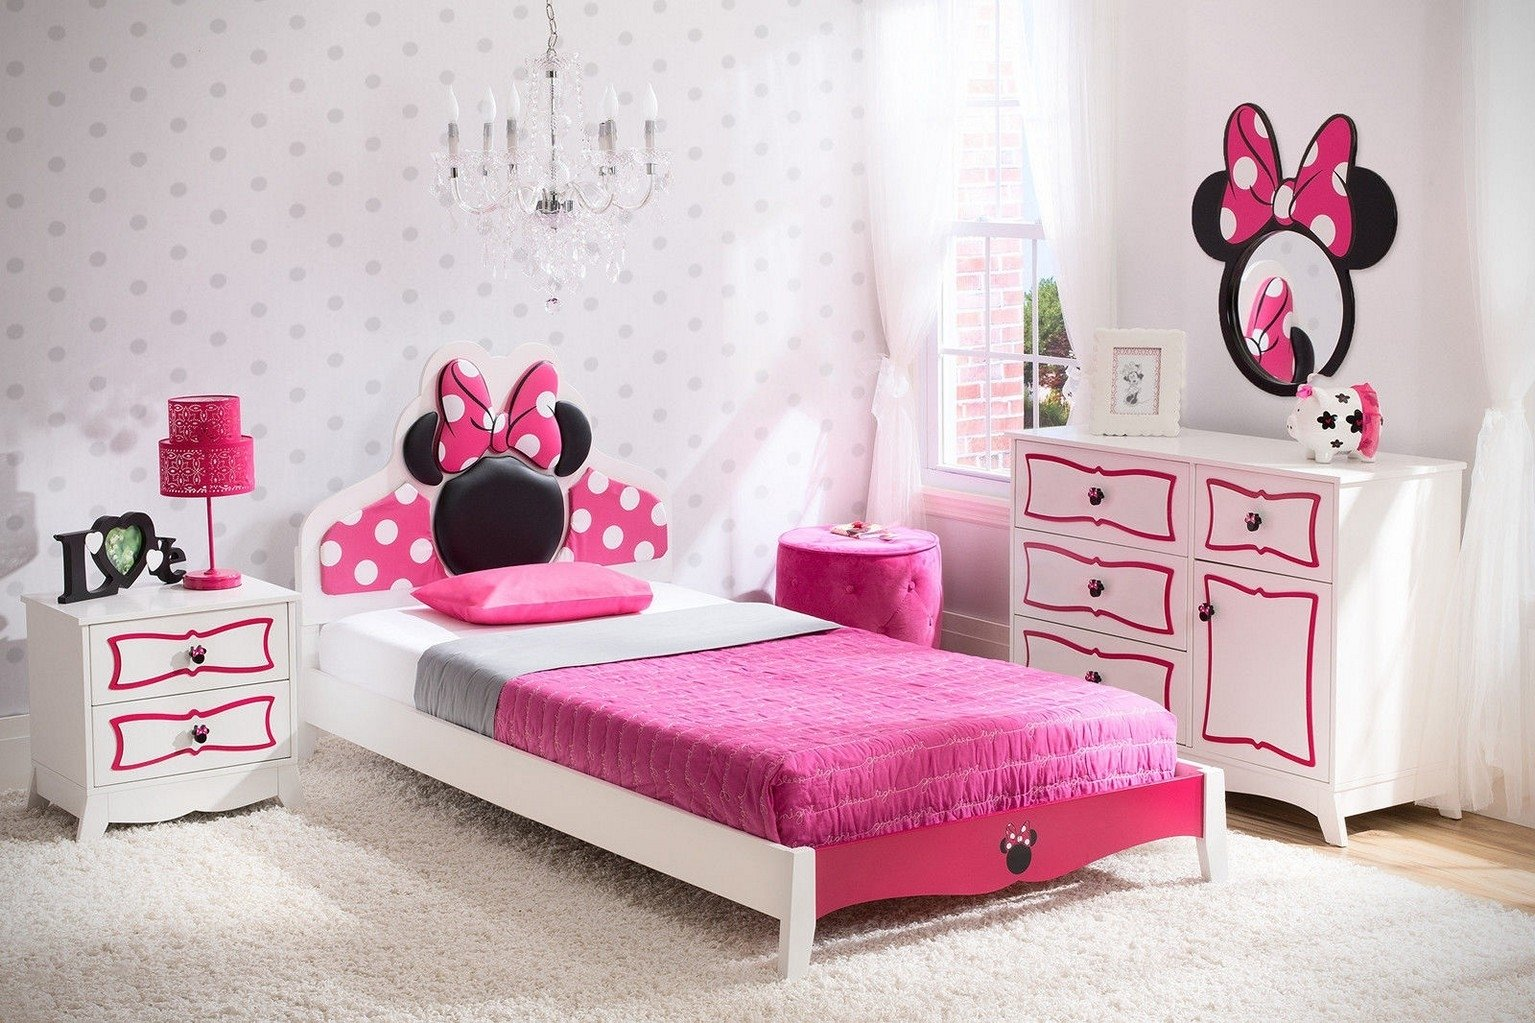 10 Wonderful Painting Ideas For Girls Room ideas for painting a girls bedroom pertaining to painting ideas for